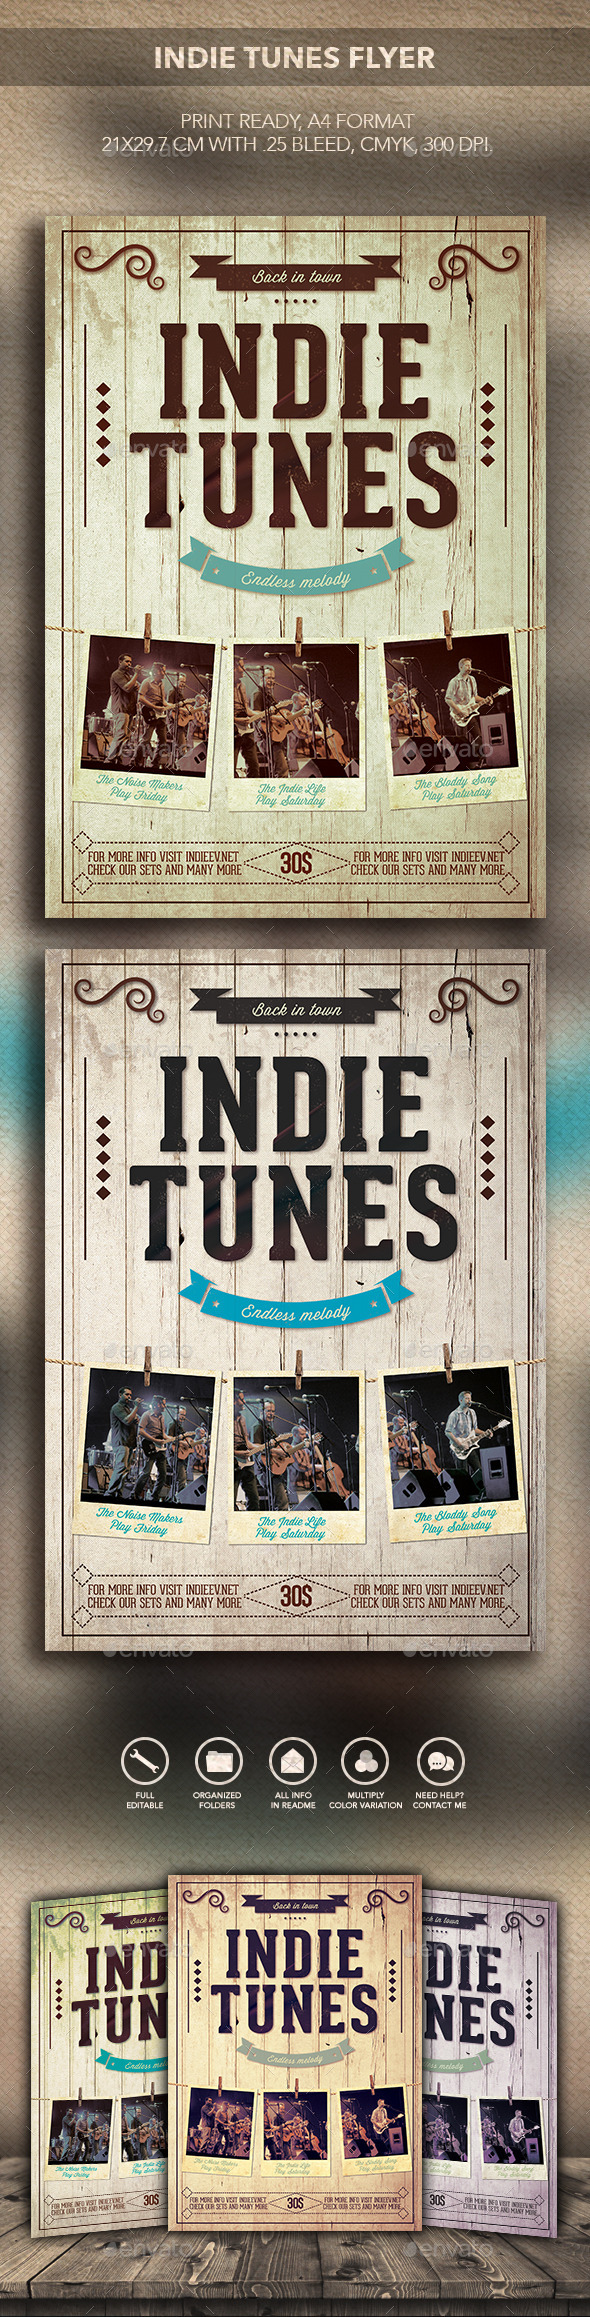 GraphicRiver Indie tunes Flyer 10355506